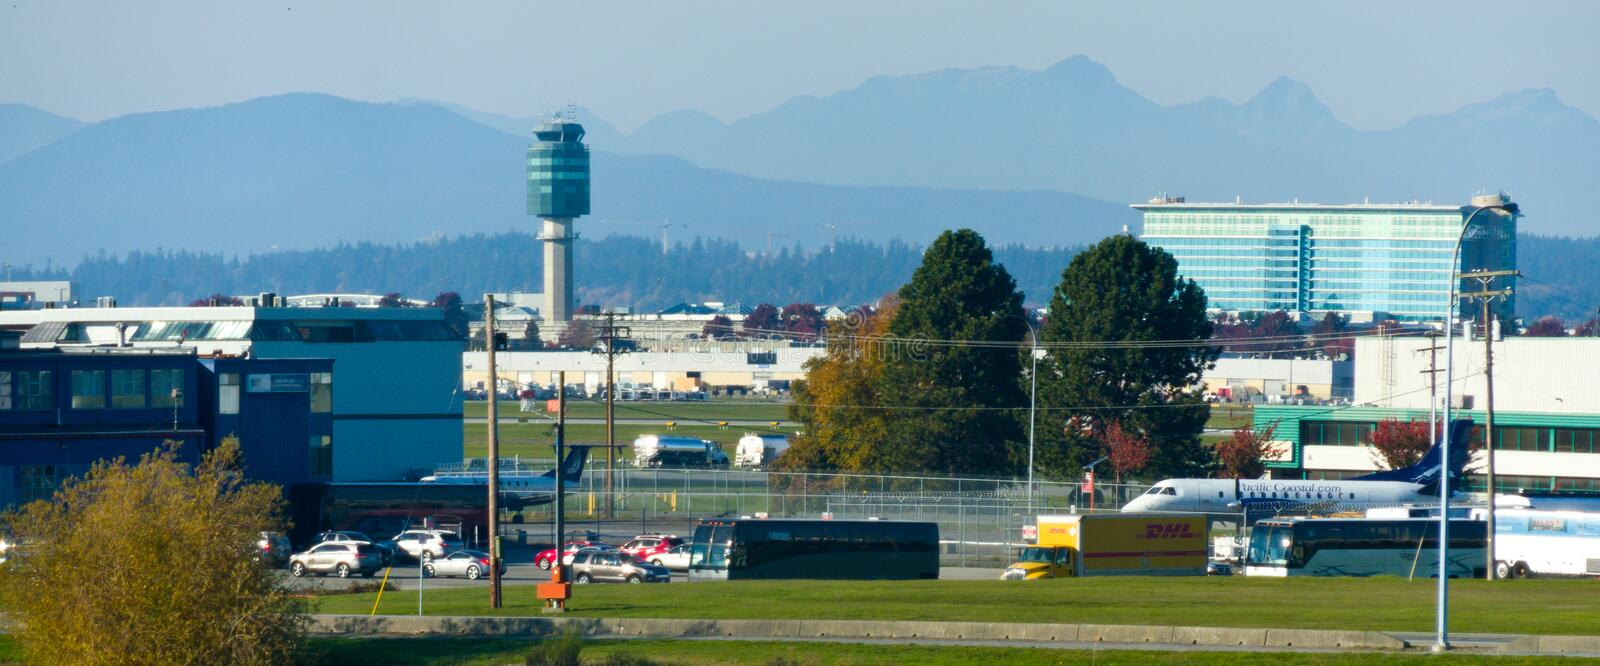 Vancouver Airport stock images